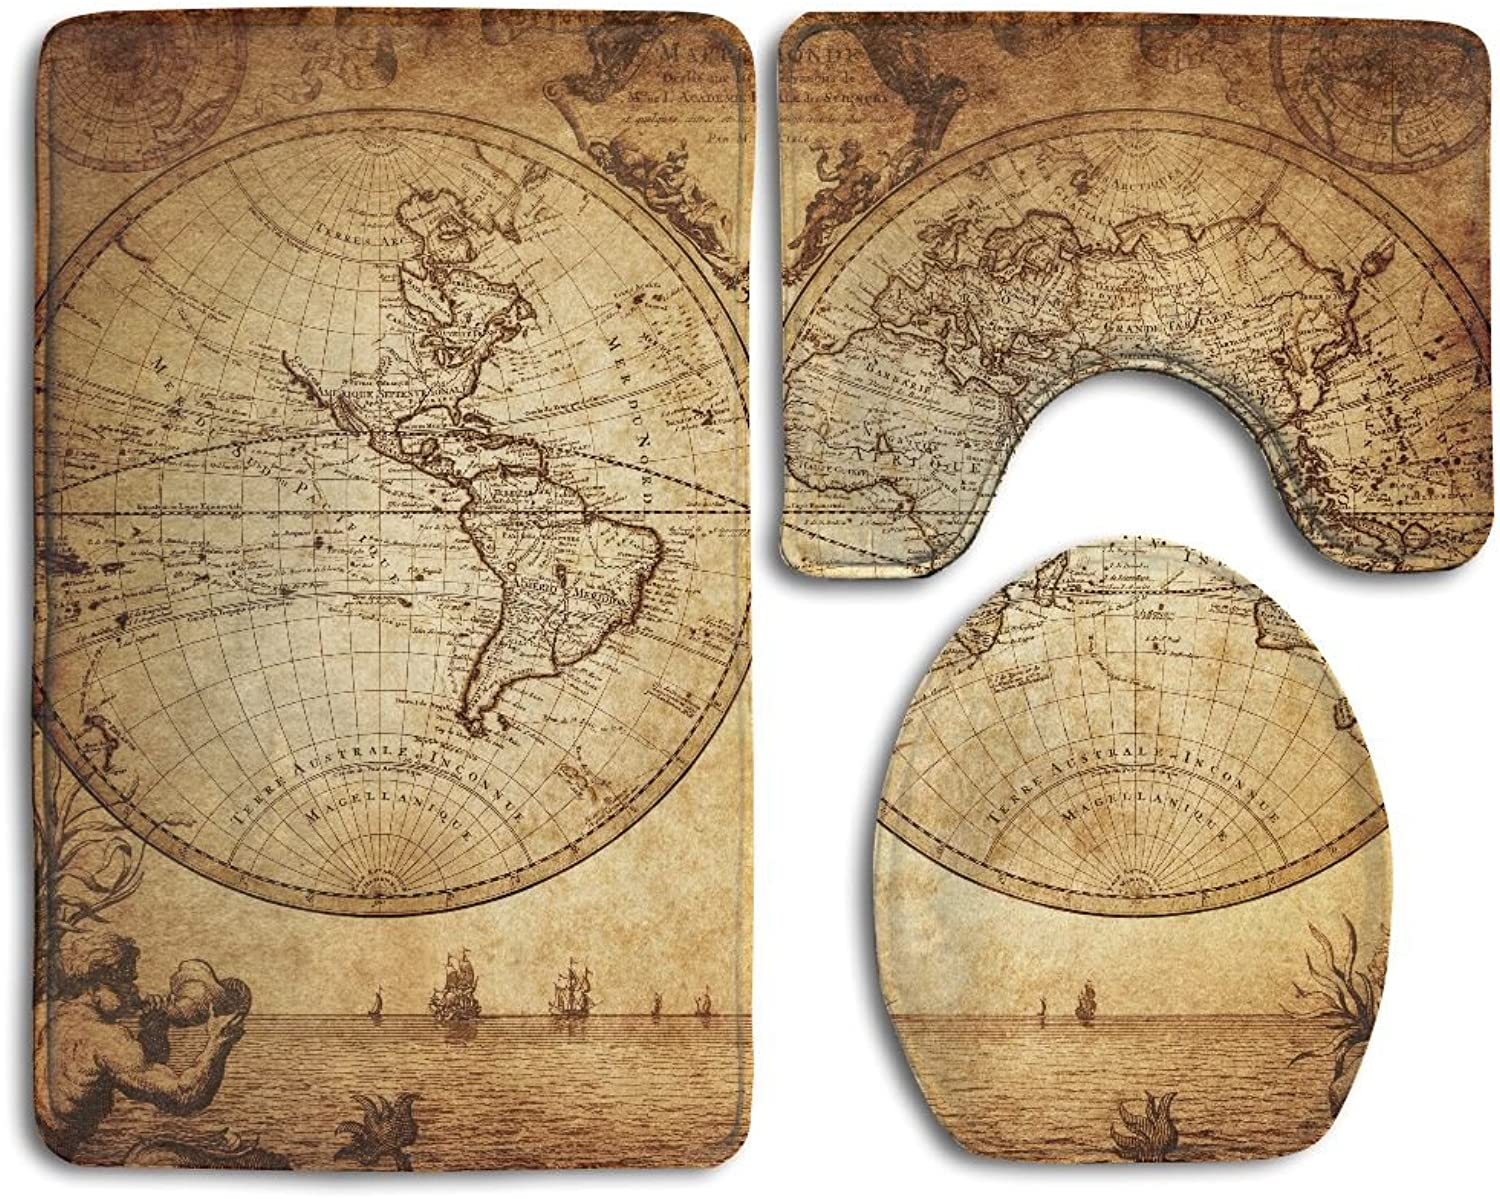 WEEDKEYCAT Retro Old Map Sea Non Slip Large Home Bathroom Rugs Doormats,Soft Toilet Rug U-Shaped Mat,Luxury Round Toilet Lid Cover 3 Pieces Set